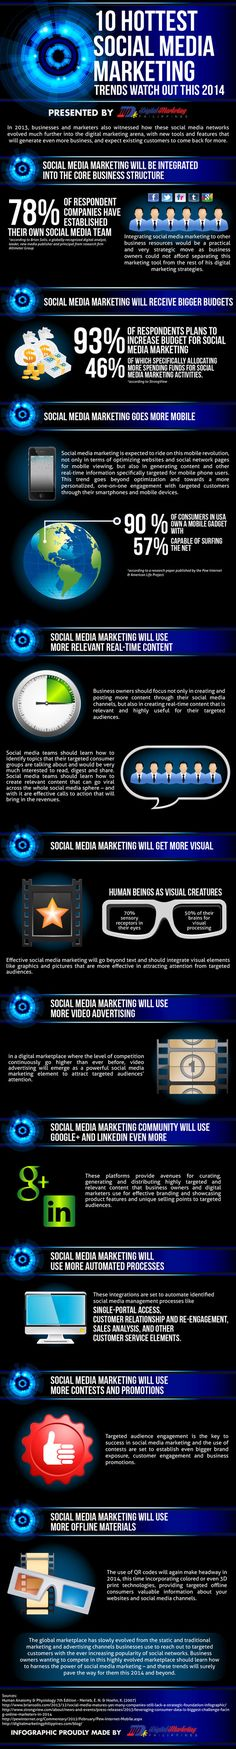 10 Hottest Social Media Marketing Trends Watch Out 2014 #socialmedia #marketing #infographic